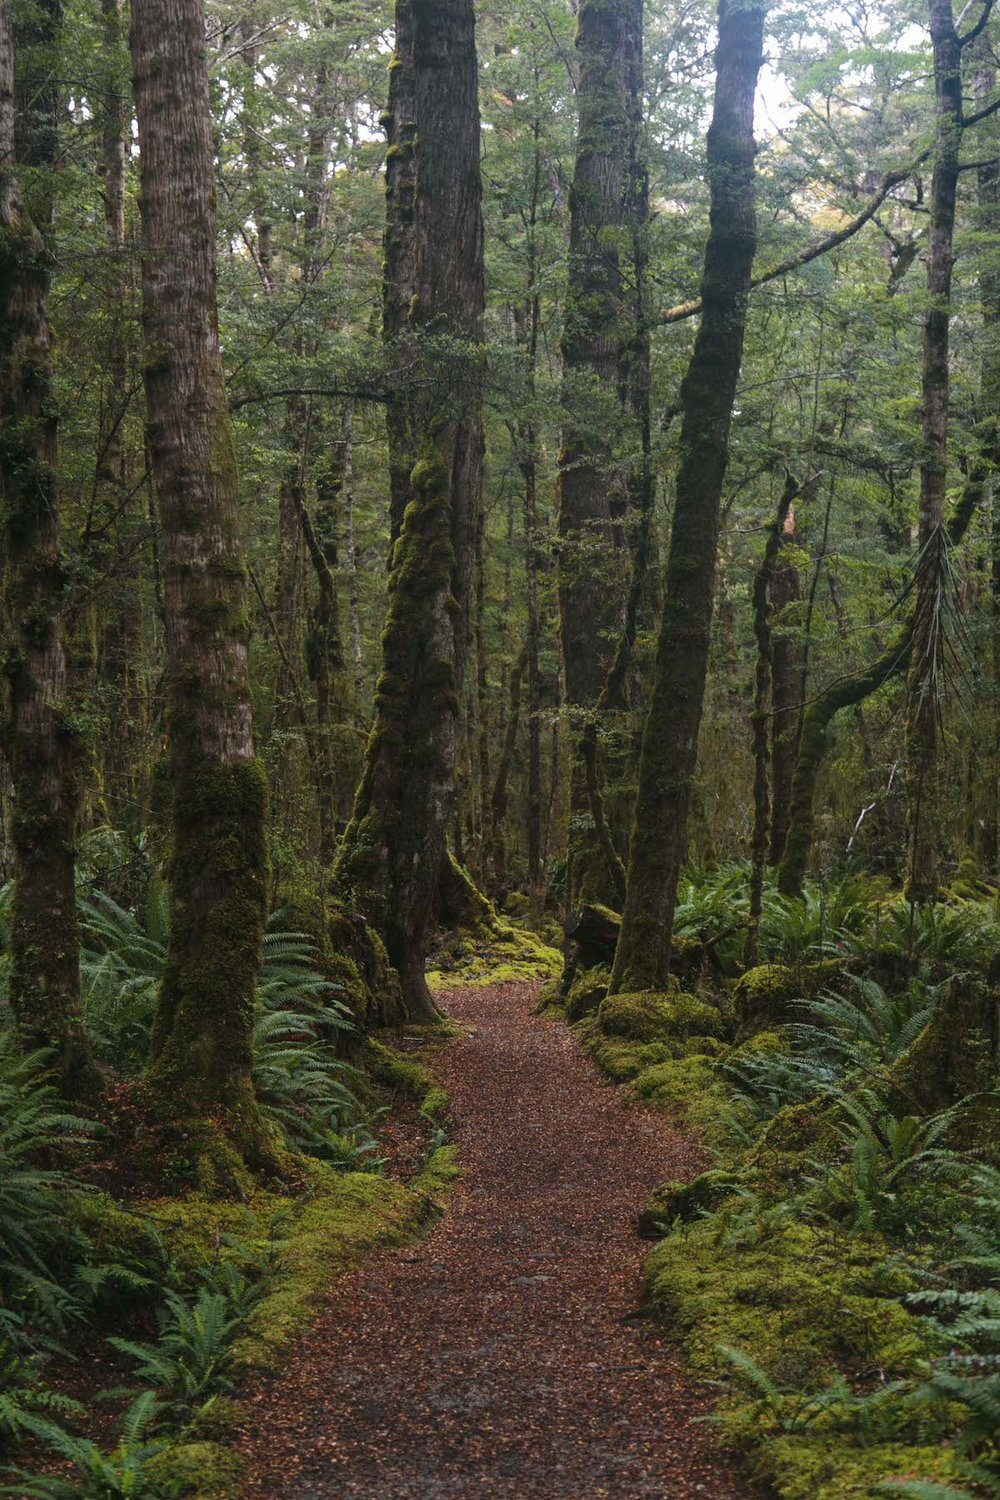 Lots of lush, fantastical goblin forests on the Kepler Track